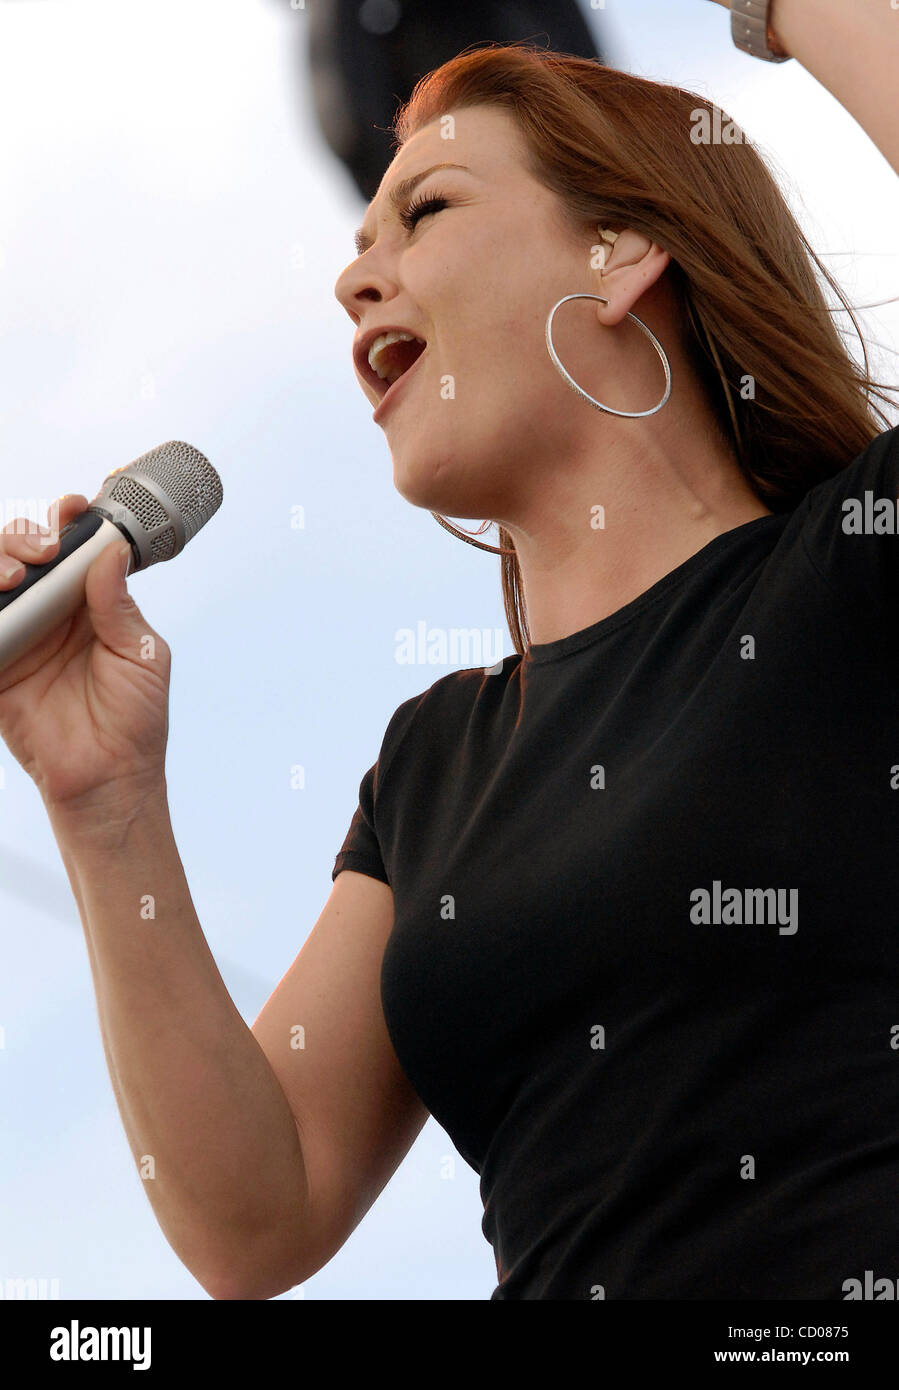 May 4 2008 Indio CA USA Musician GRETCHEN WILSON Performing